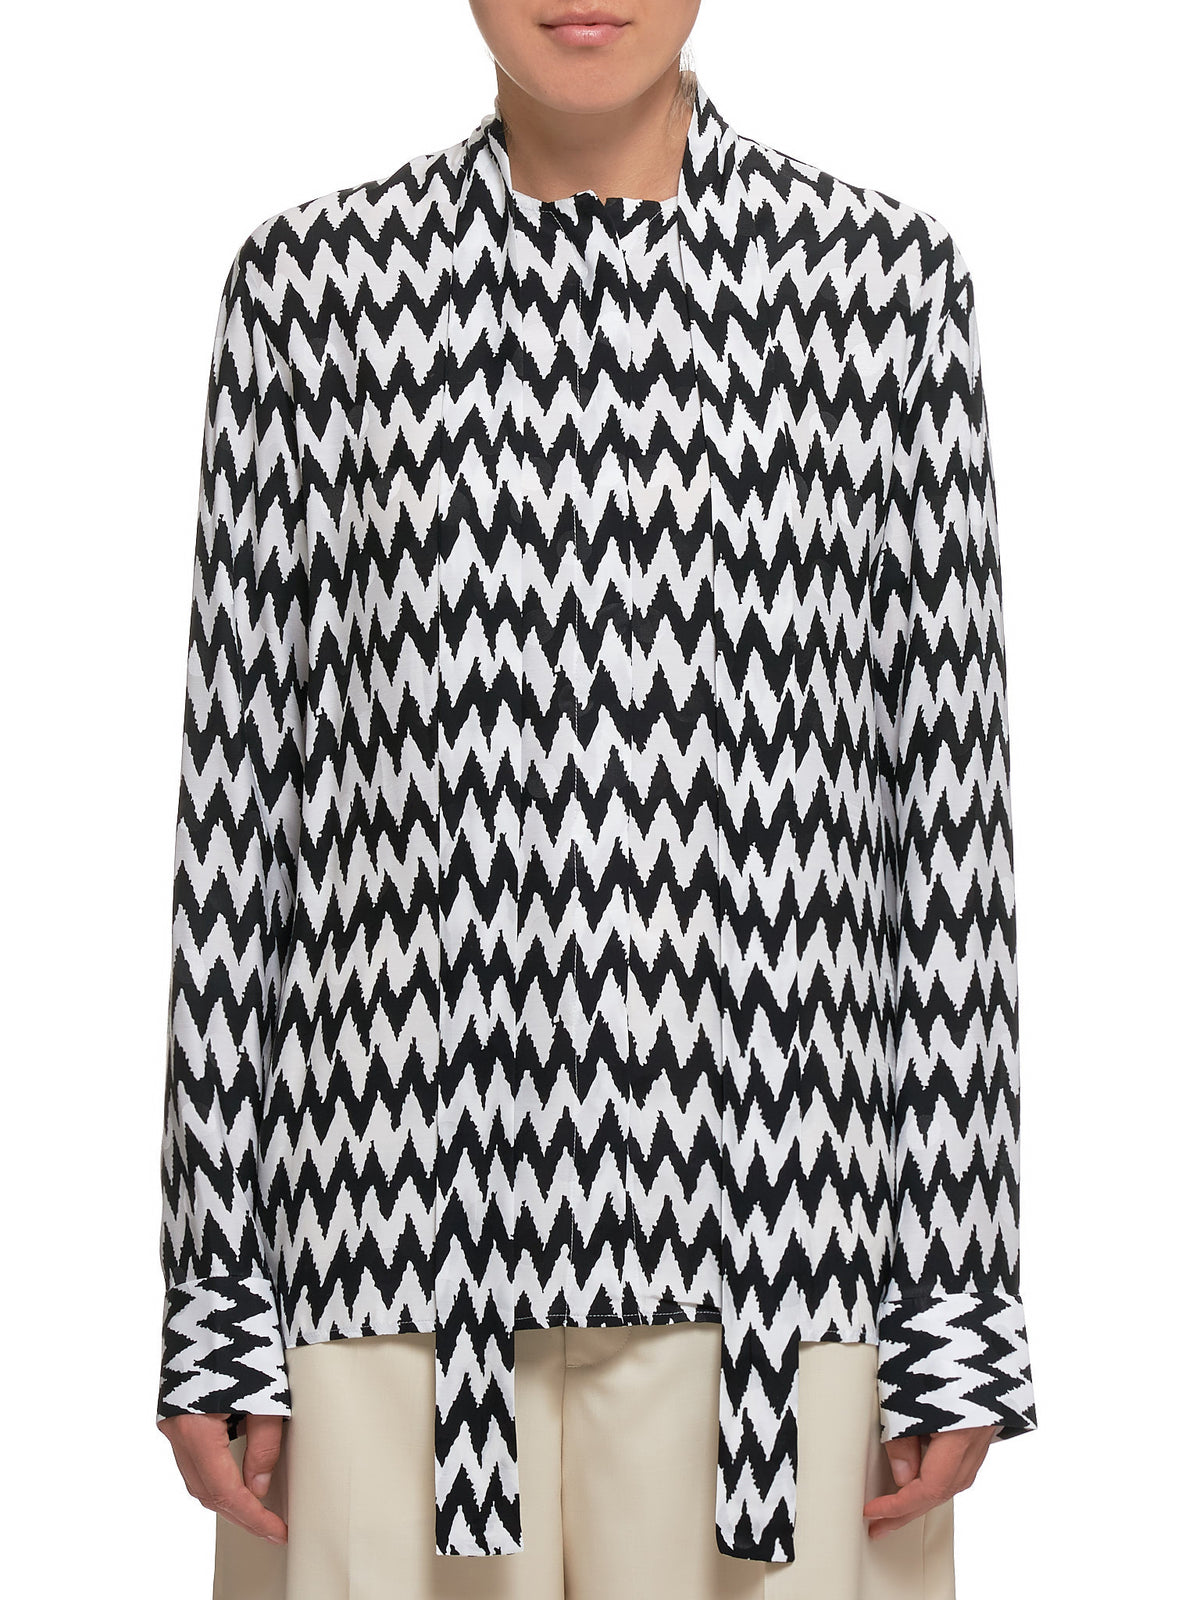 Shawl Collar Shirt (194-2004-140-011-CHEVRON)